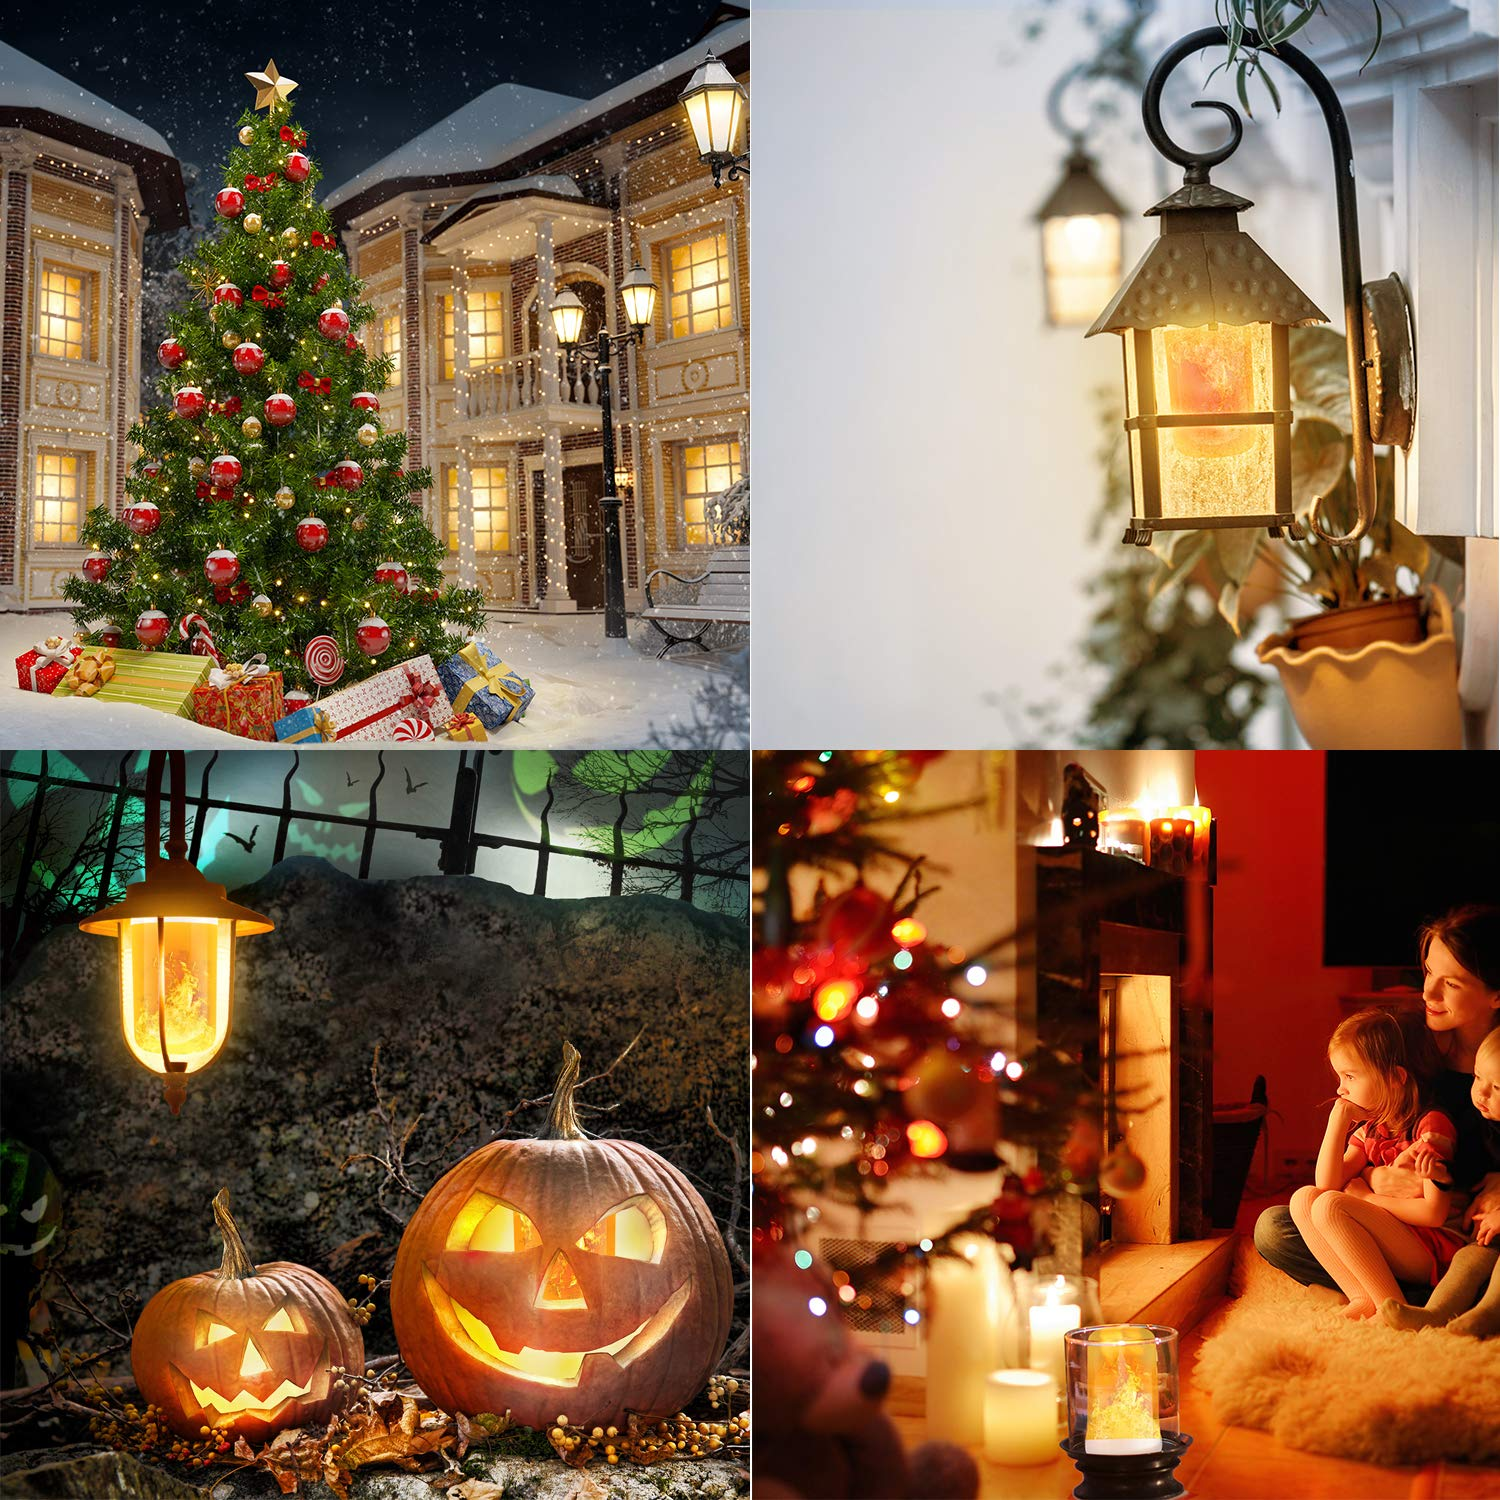 Dining Decorative Atmosphere Lamps for Halloween Flame Bulb Christmas Home Bar Party 4 Lighting Modes 4 PCS Suzzam 4W E27 Base Flame Lamp